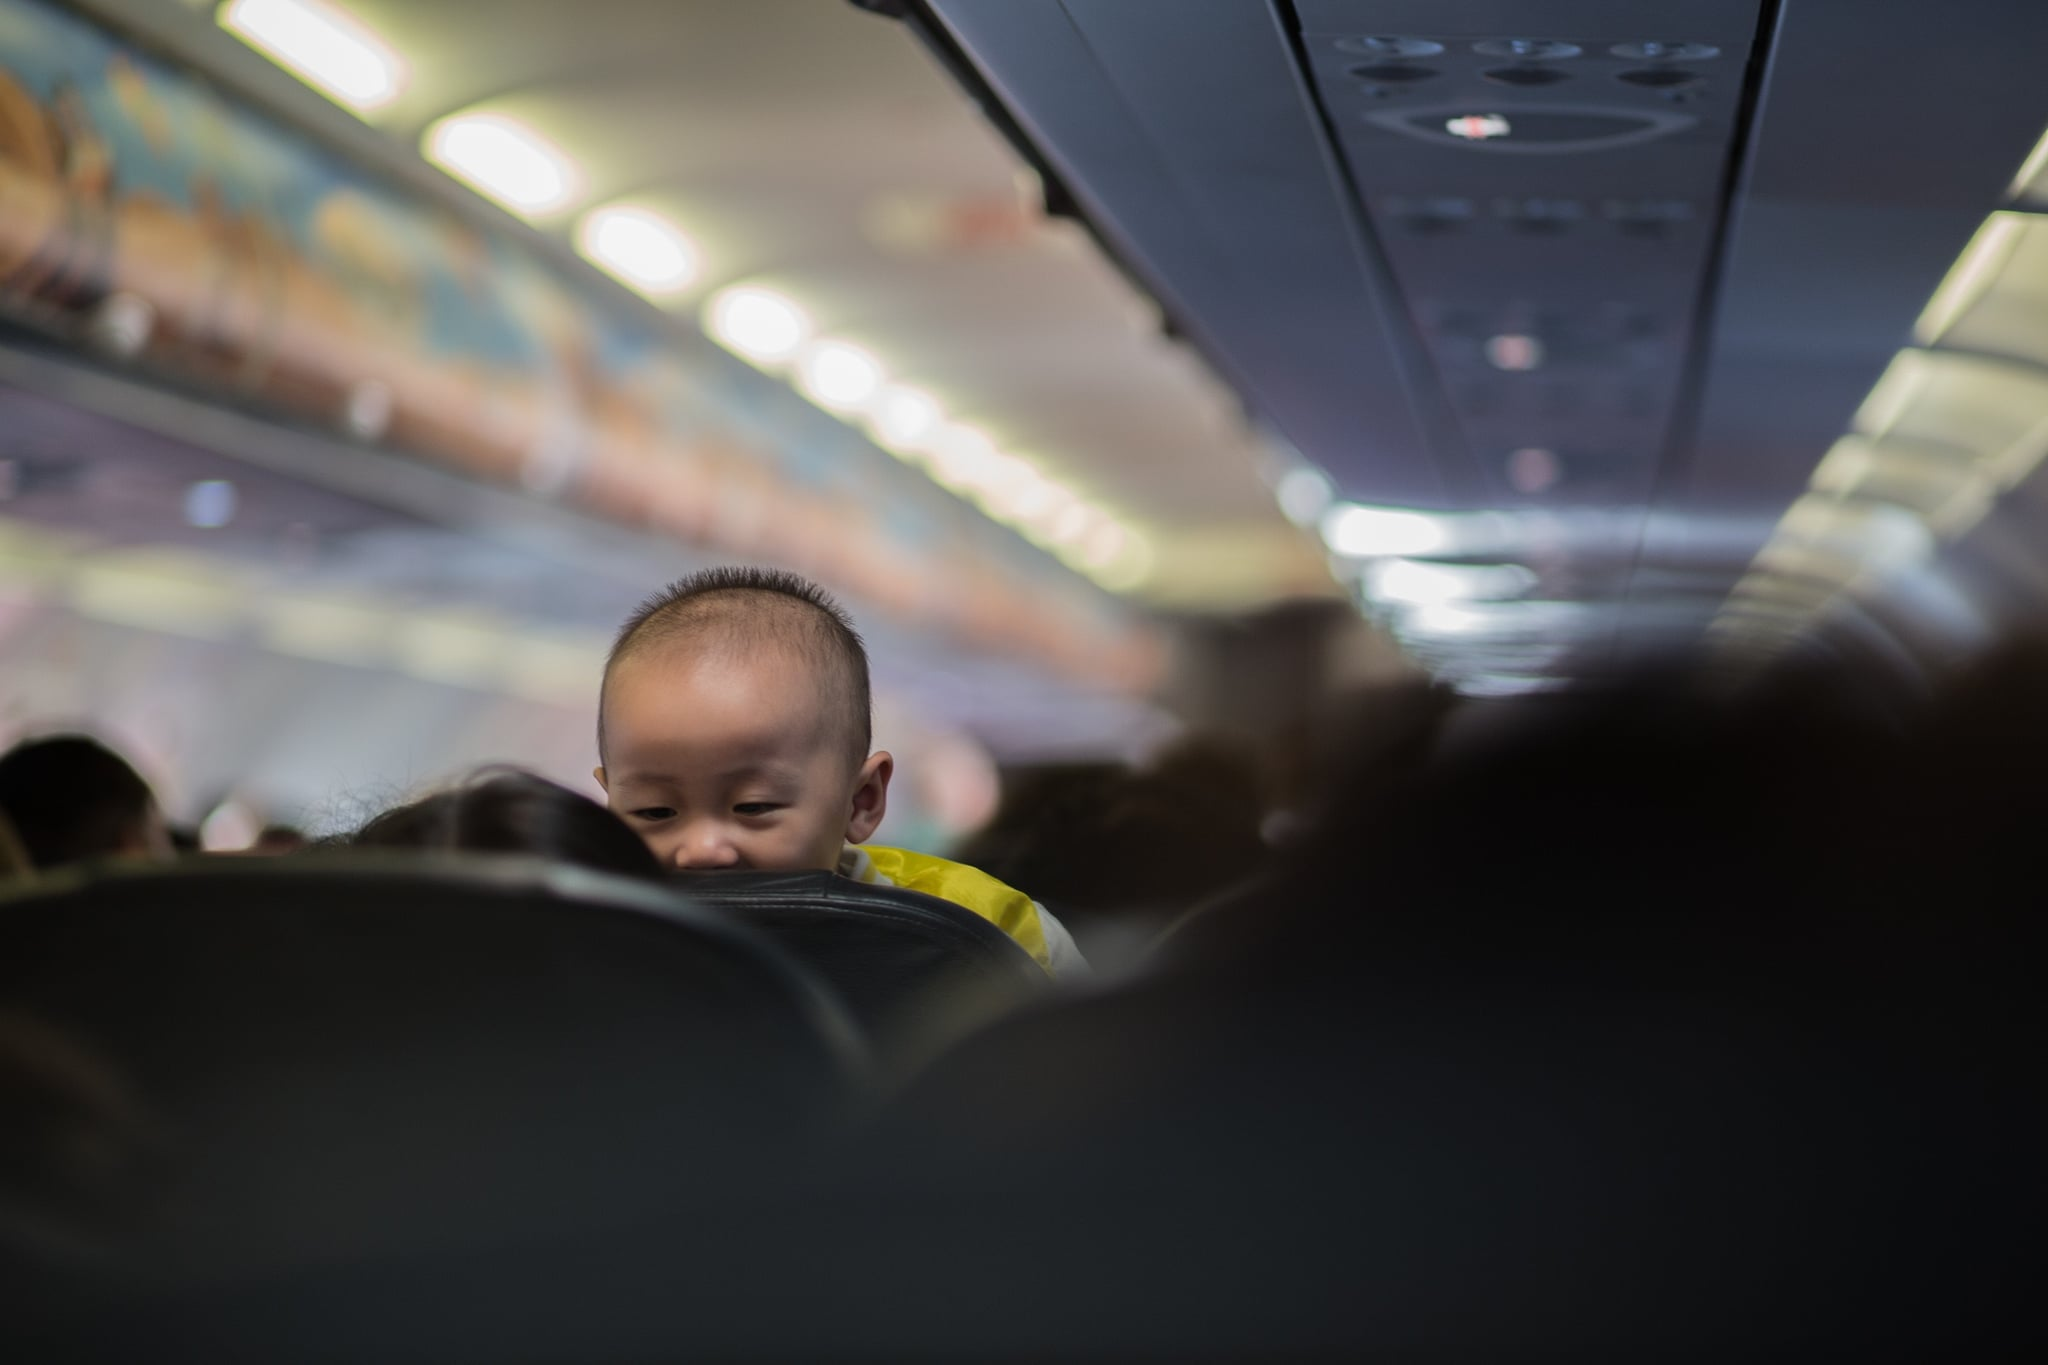 6 Tips to Help Relieve Your Child's Ear Pain While Flying